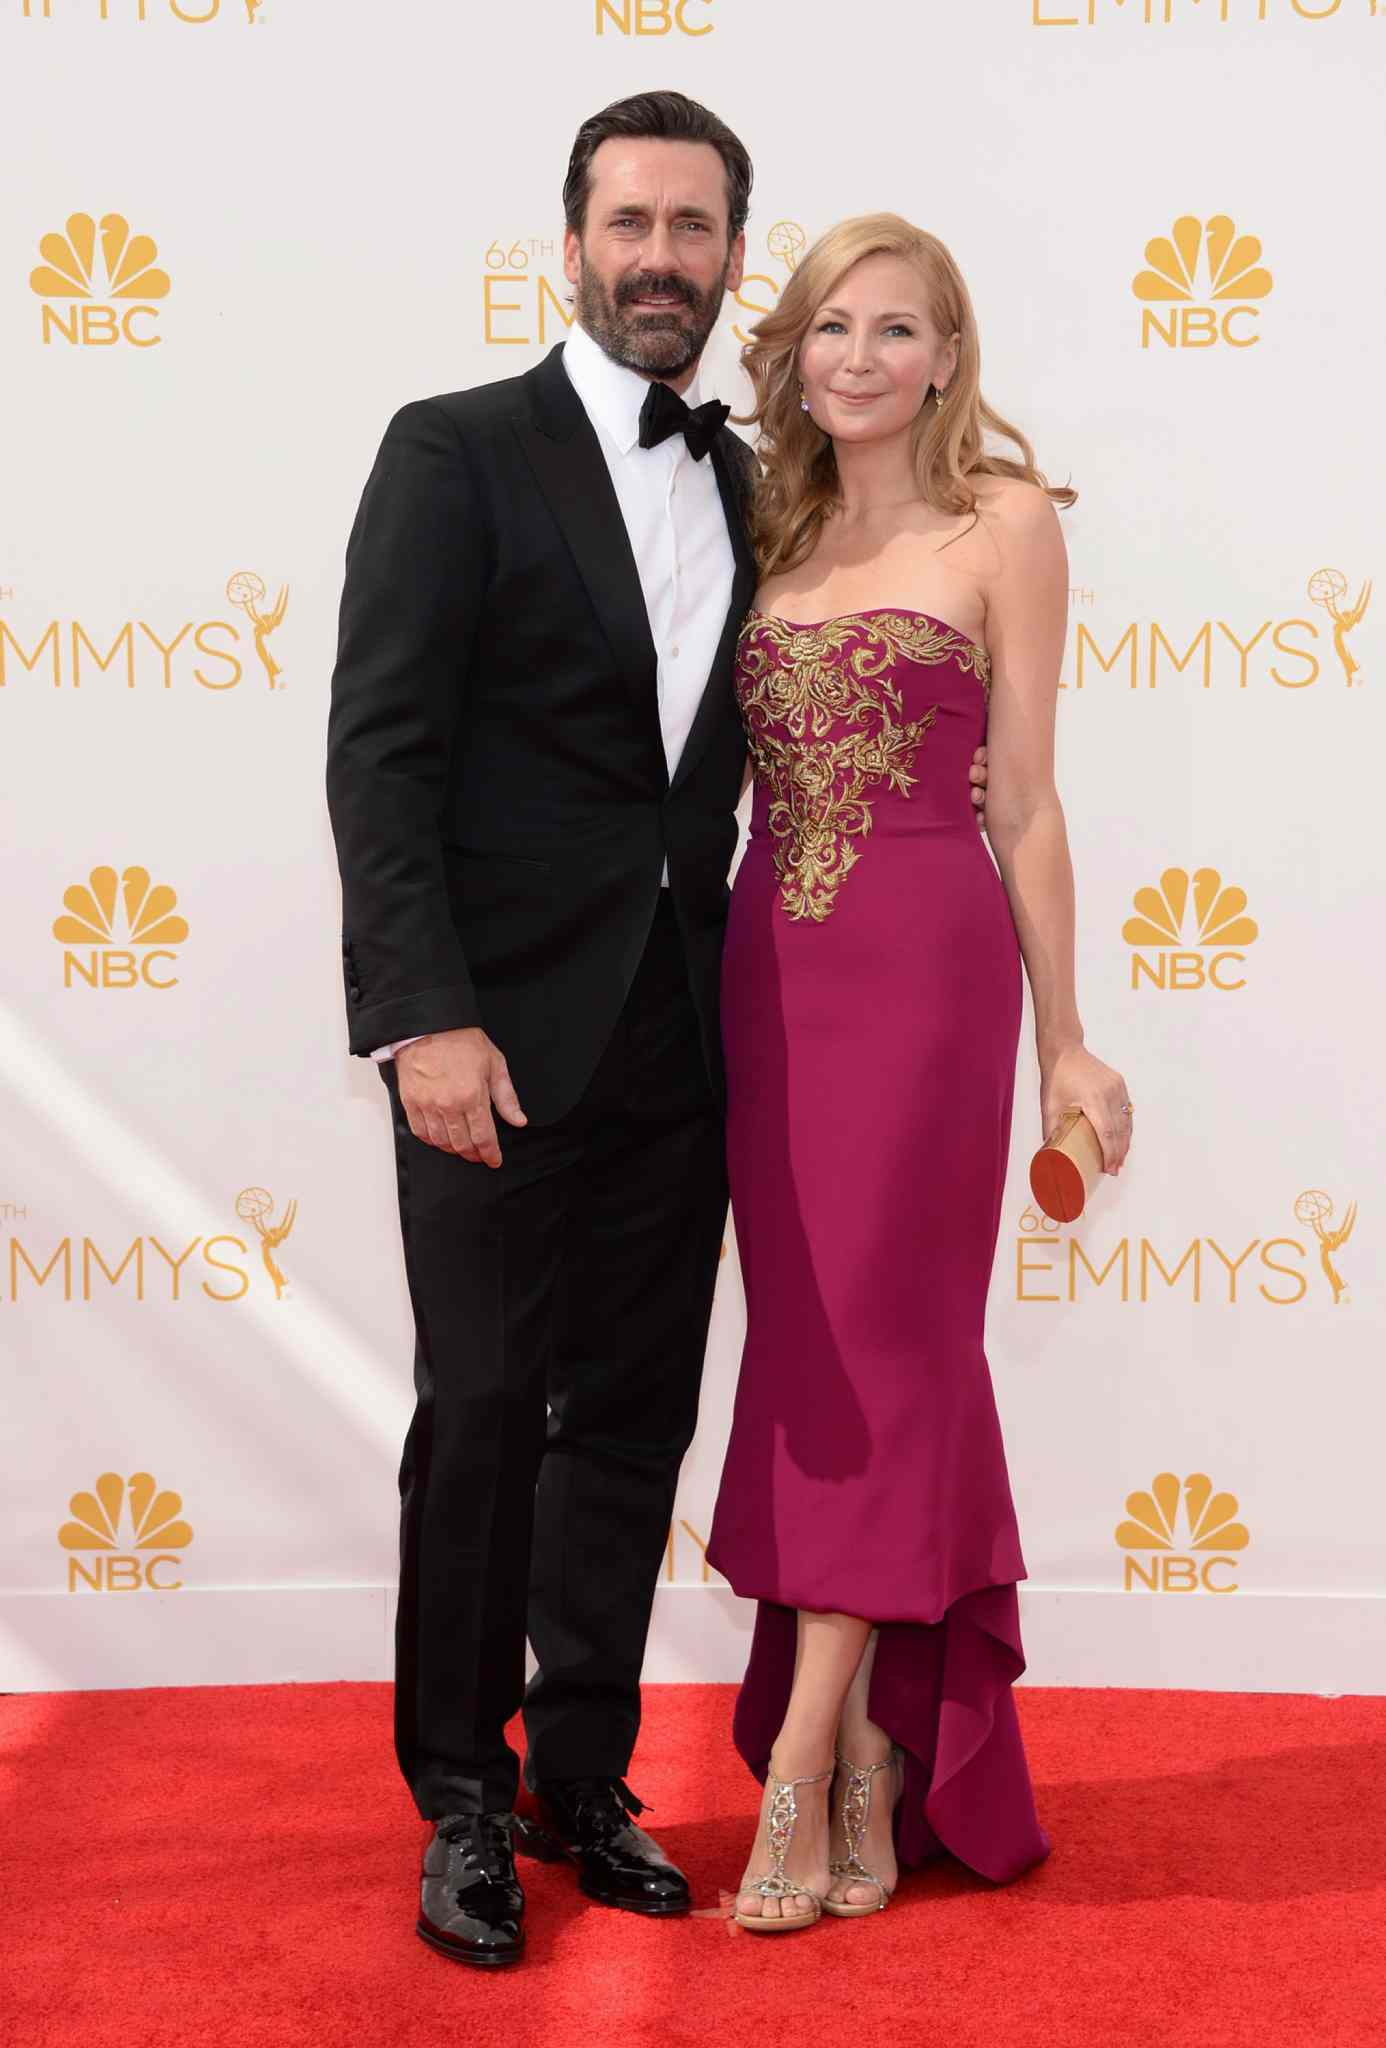 Mad Men's Jon Hamm, left, and his wife, actor Jennifer Westfeldt, arrive at the 66th Primetime Emmy Awards Monday.